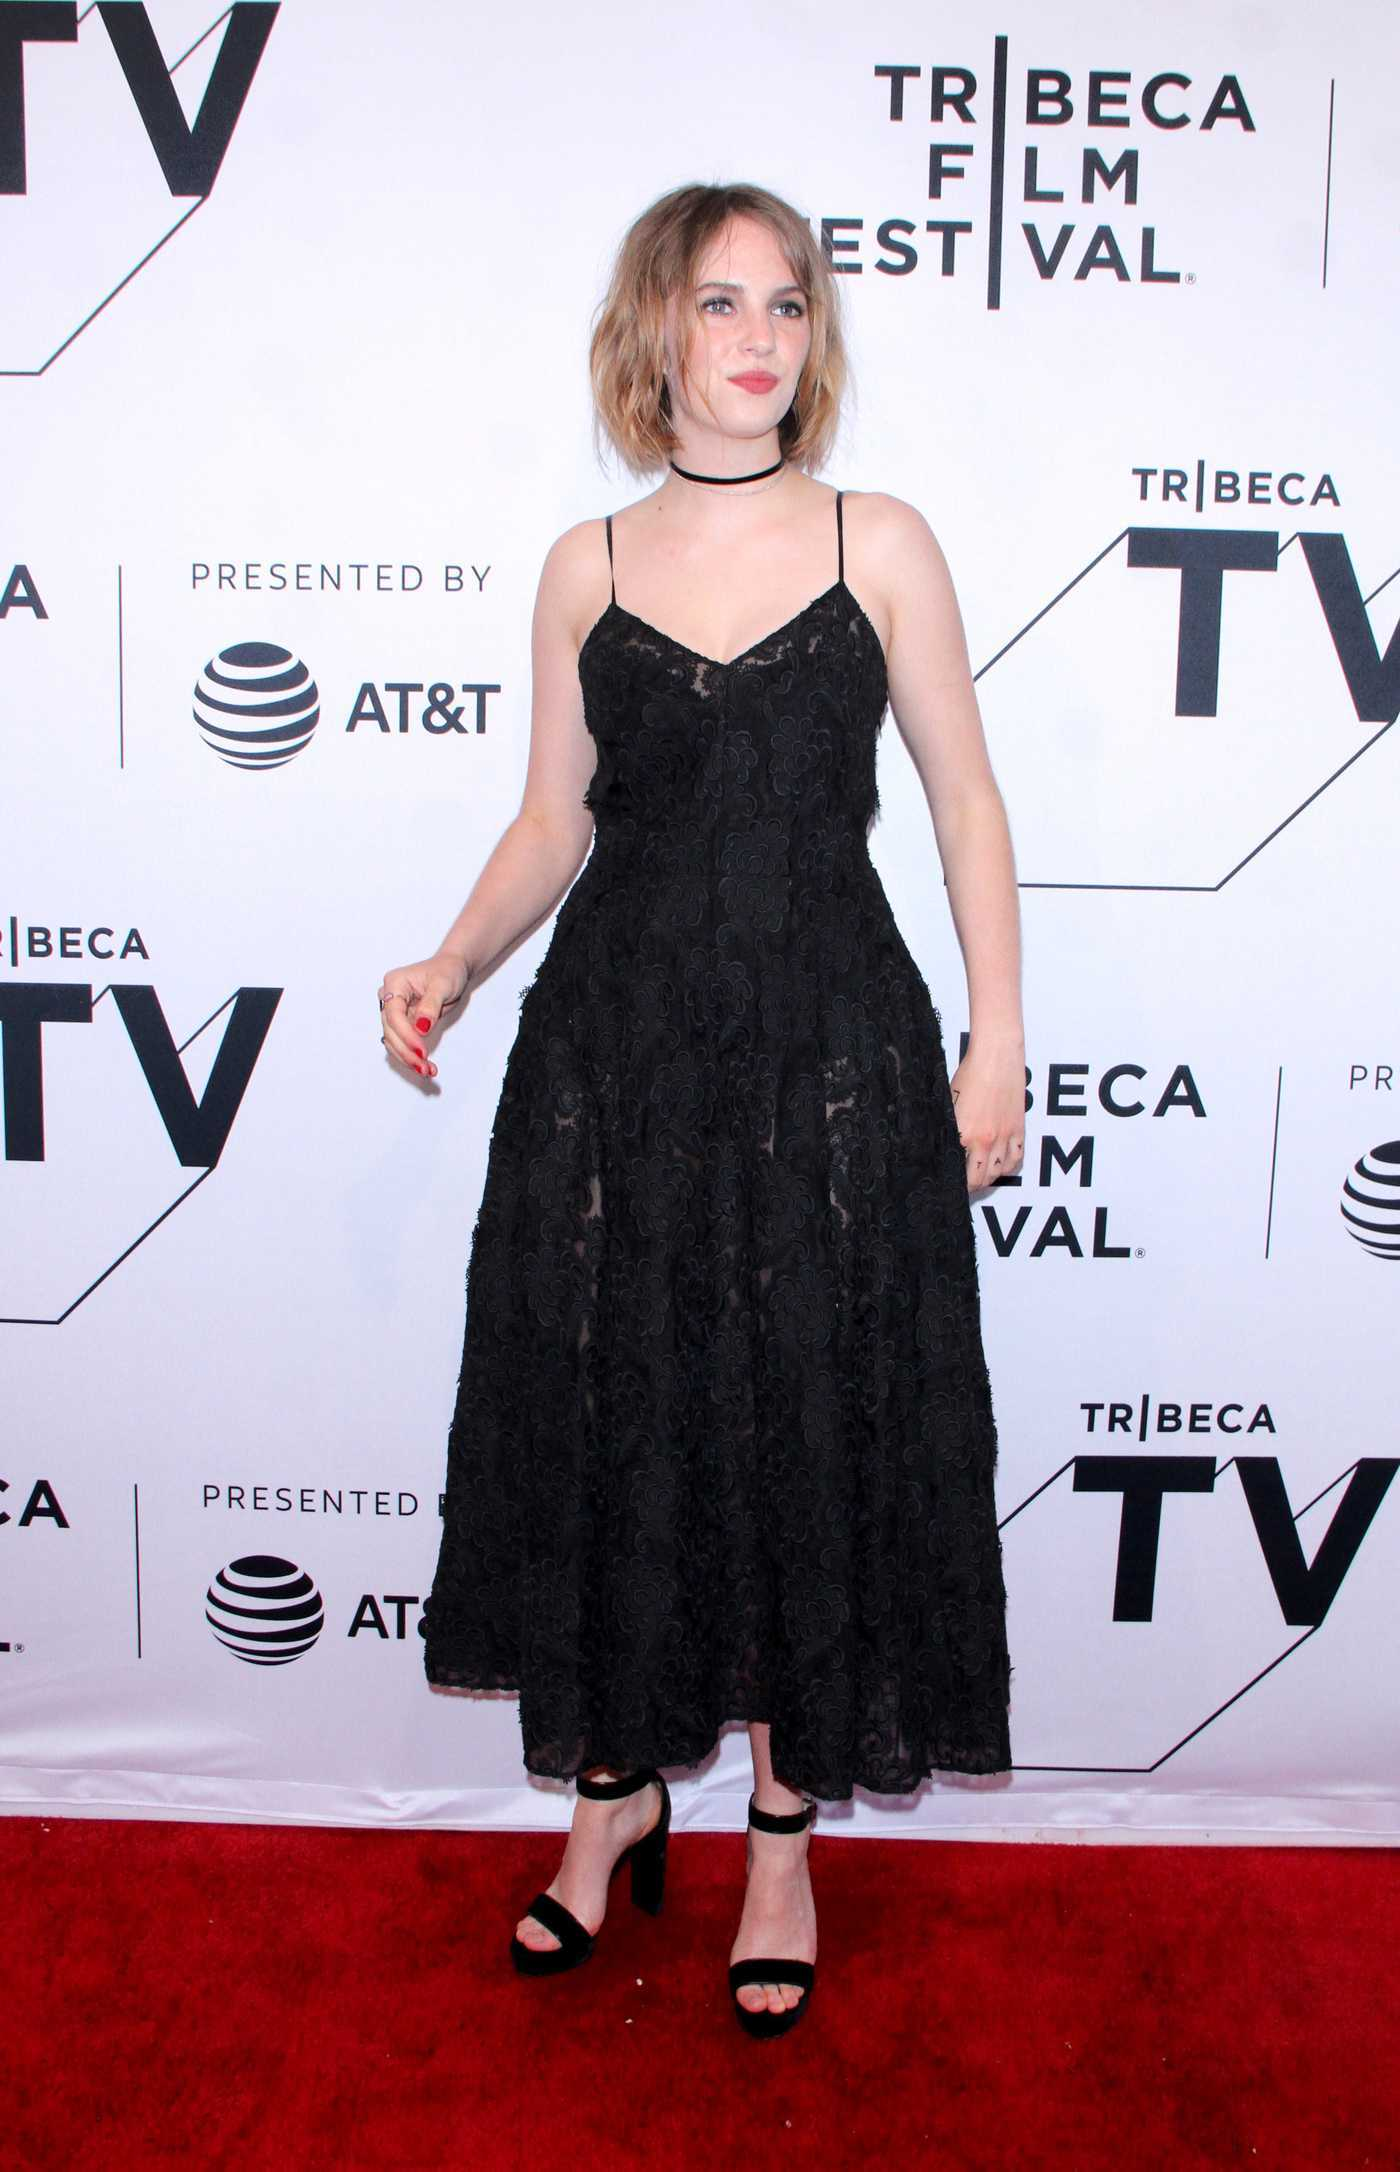 Maya Hawke at the Little Women Screening During the Tribeca Film Festival in New York City 04/27/2018